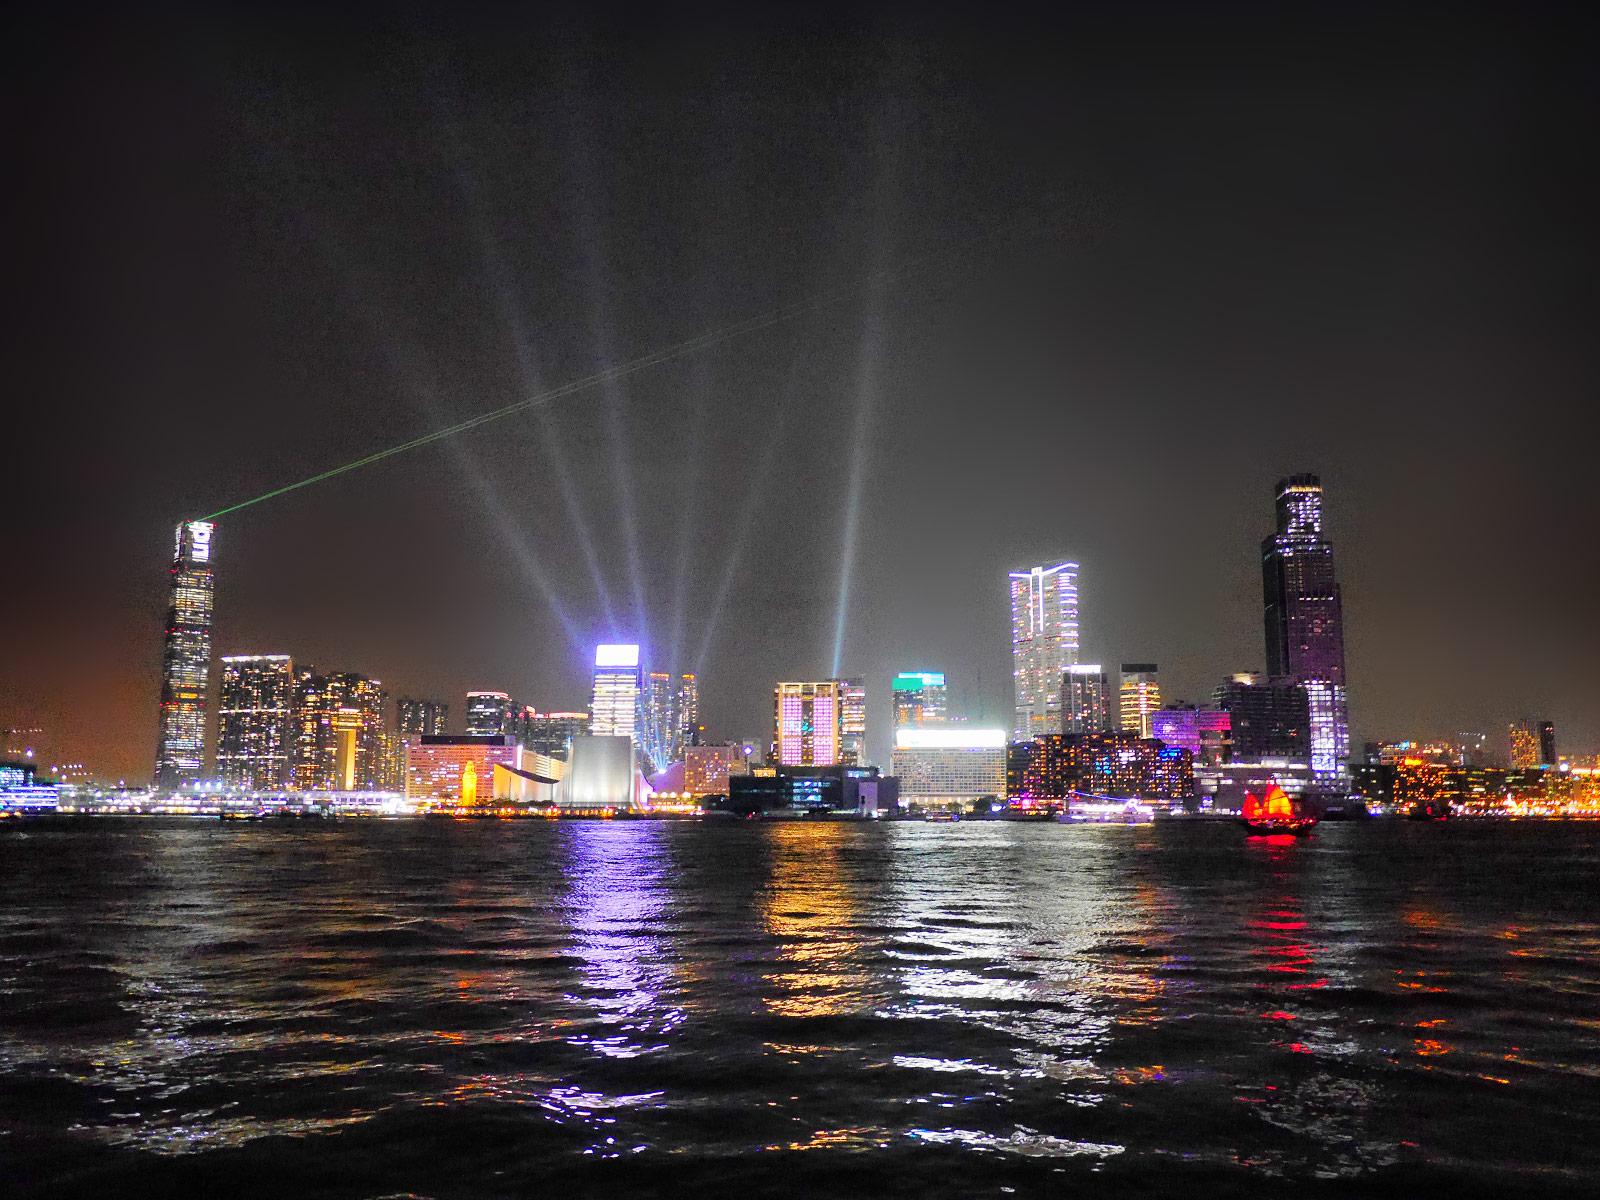 A Symphony of Lights: Watch the Night Skyline Come Alive (8PM Daily) - Hong Kong, China